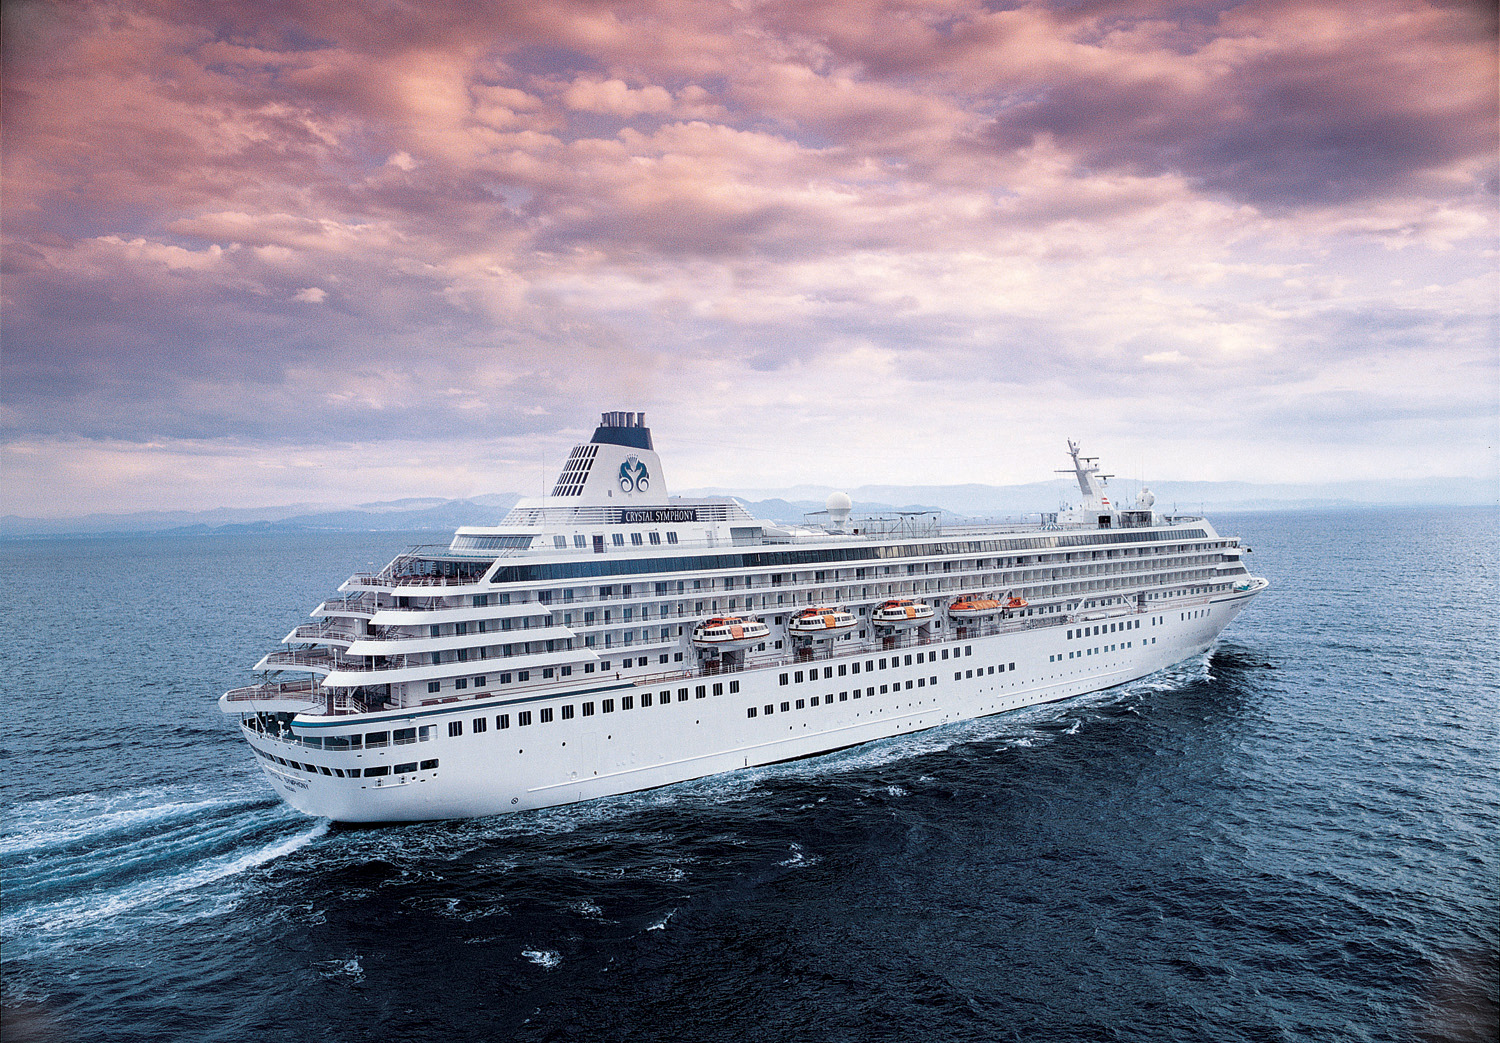 Common misconceptions of cruising